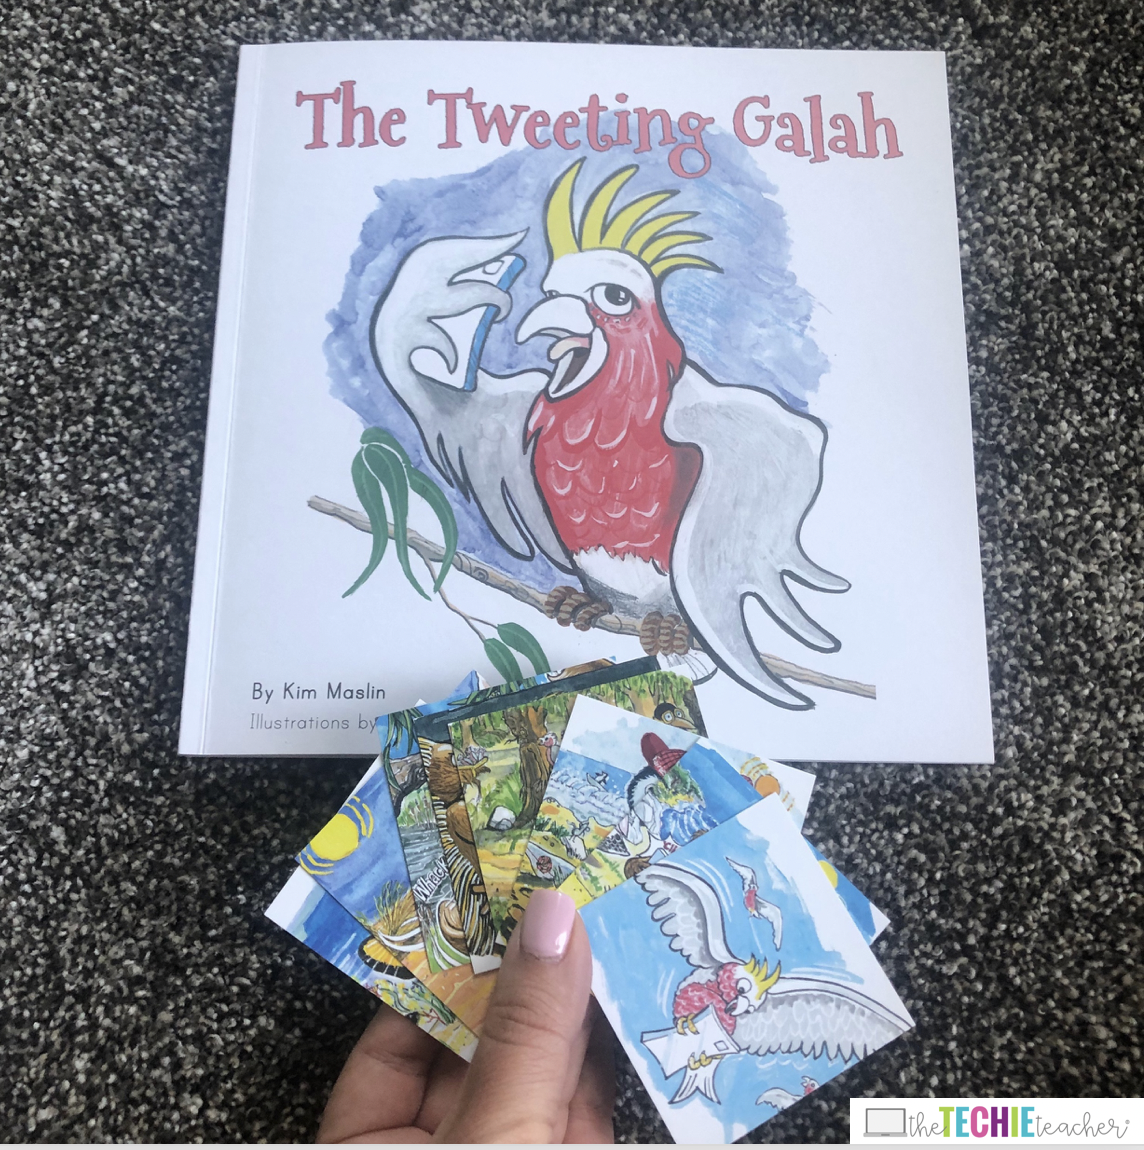 Interactive Children's Books That Address Digital Citizenship Topics: These picture books have augmented reality triggers built into the stories which makes reading an interactive experience! The Tweeting Galah